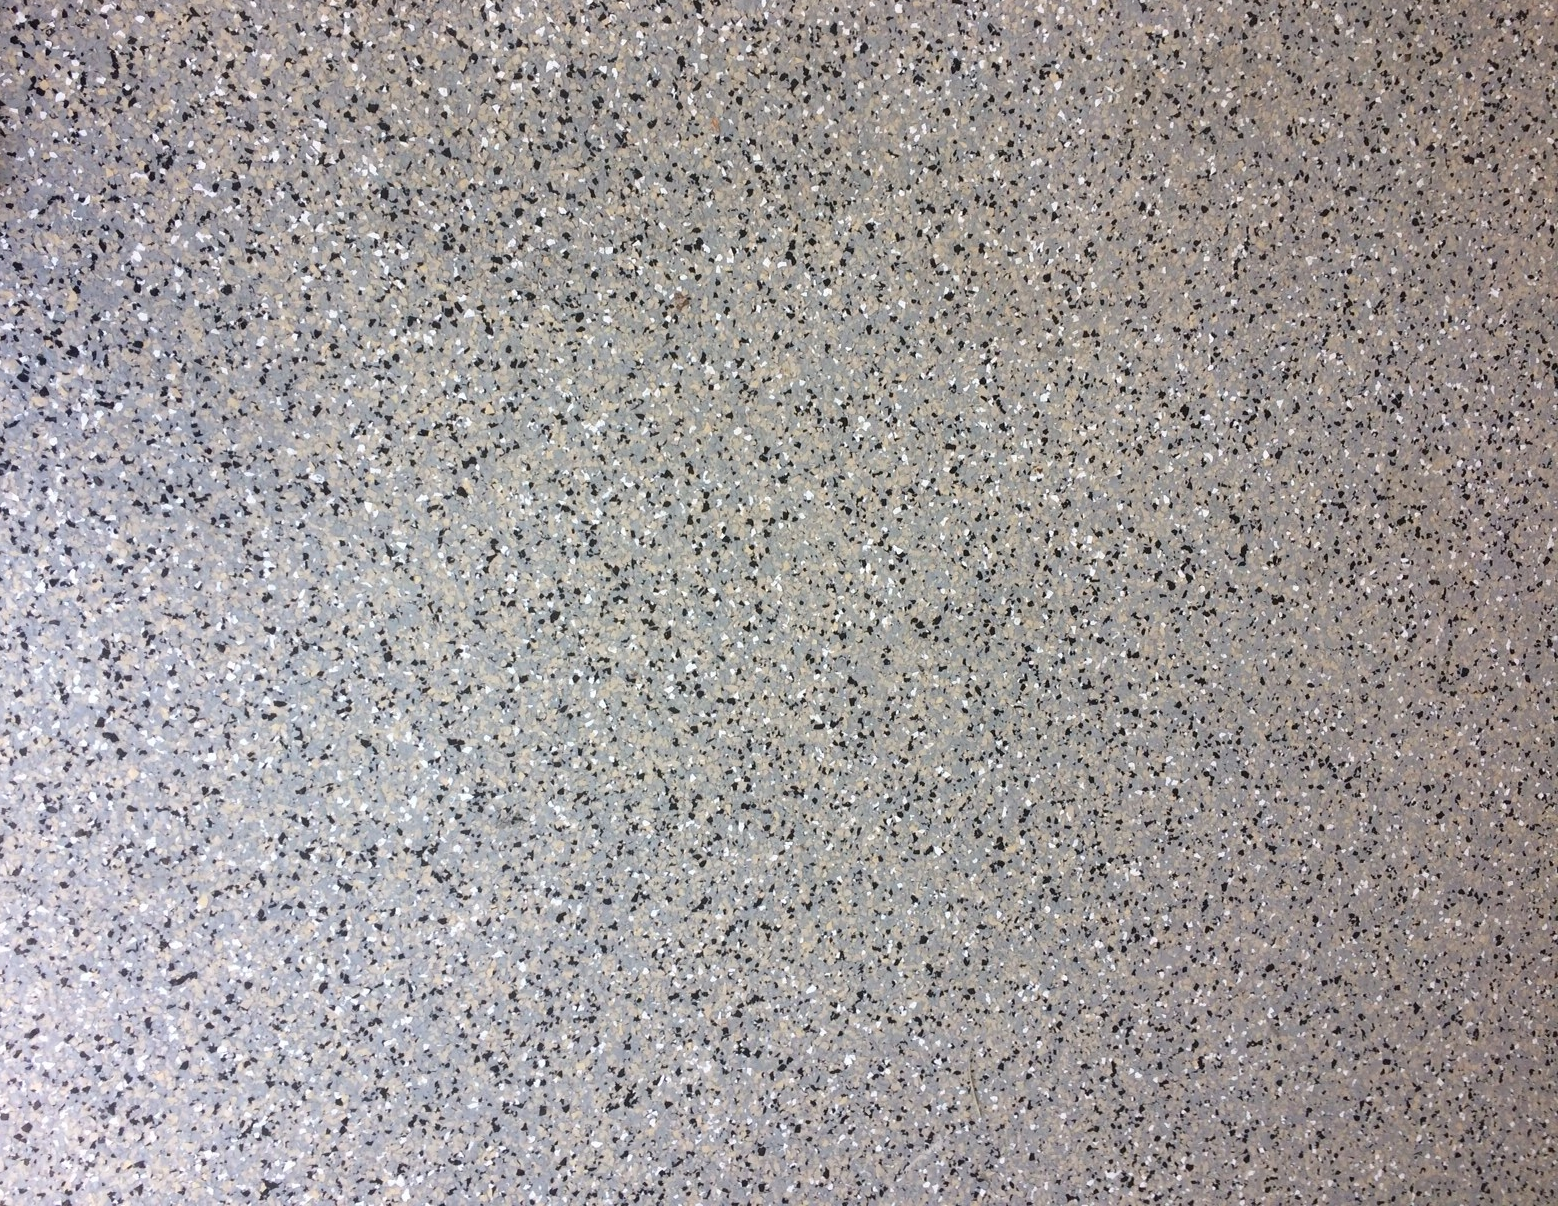 Epoxy finish makes a garage floor stylish and easy-care.